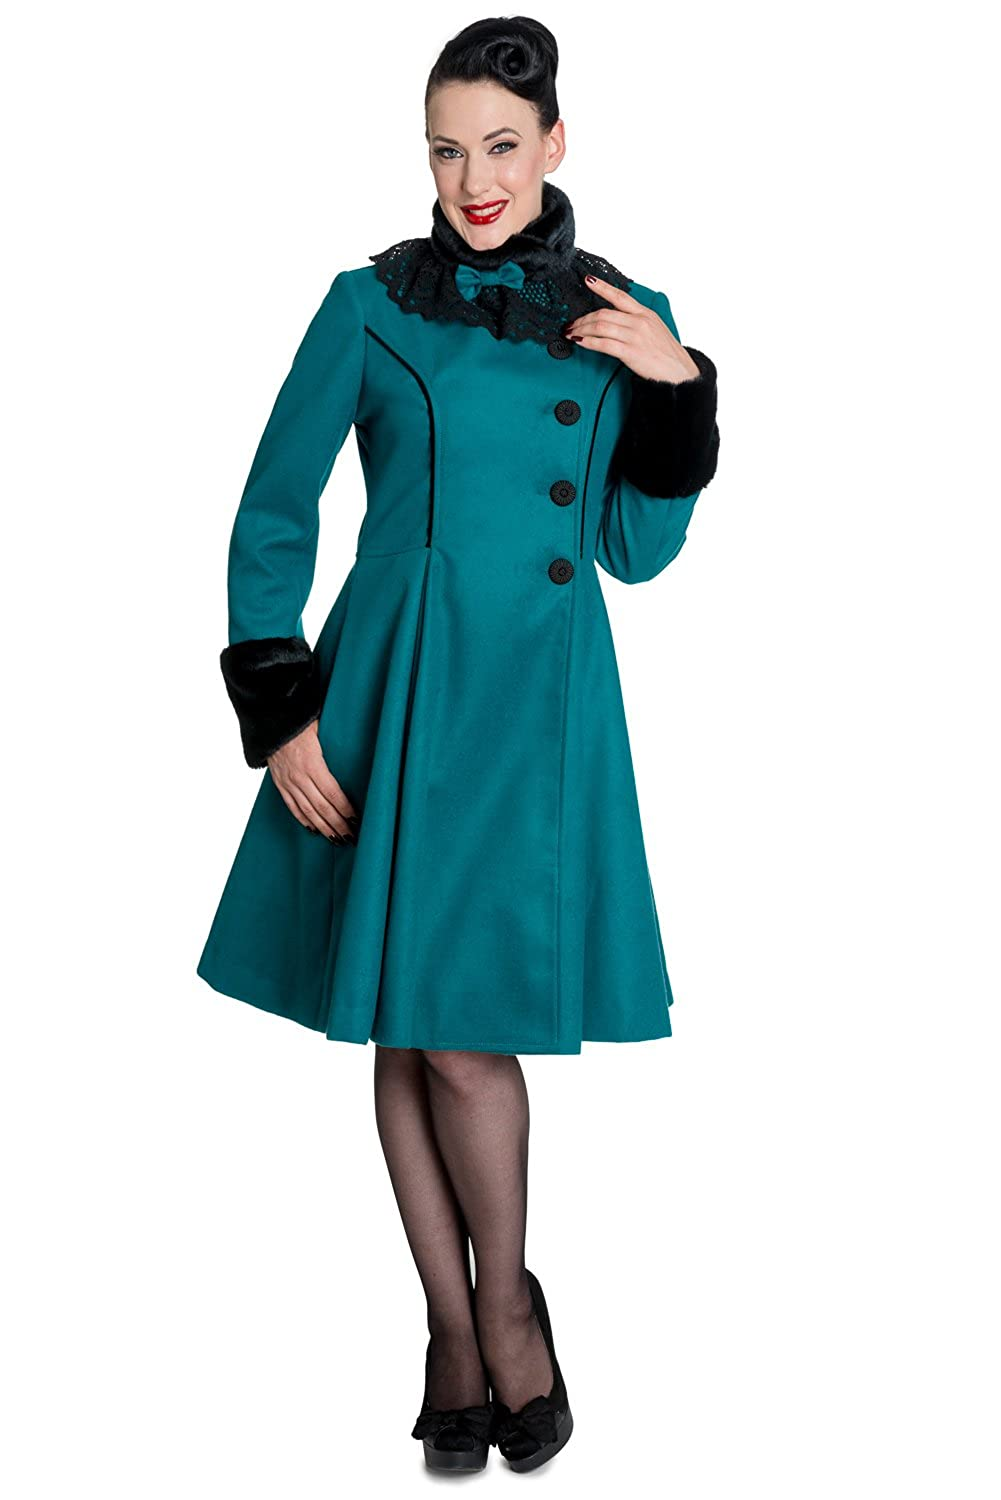 1950s Jackets, Coats, Bolero | Swing, Pin Up, Rockabilly Hell Bunny Vintage Victorian Design Teal Green Angeline Winter Coat $169.00 AT vintagedancer.com